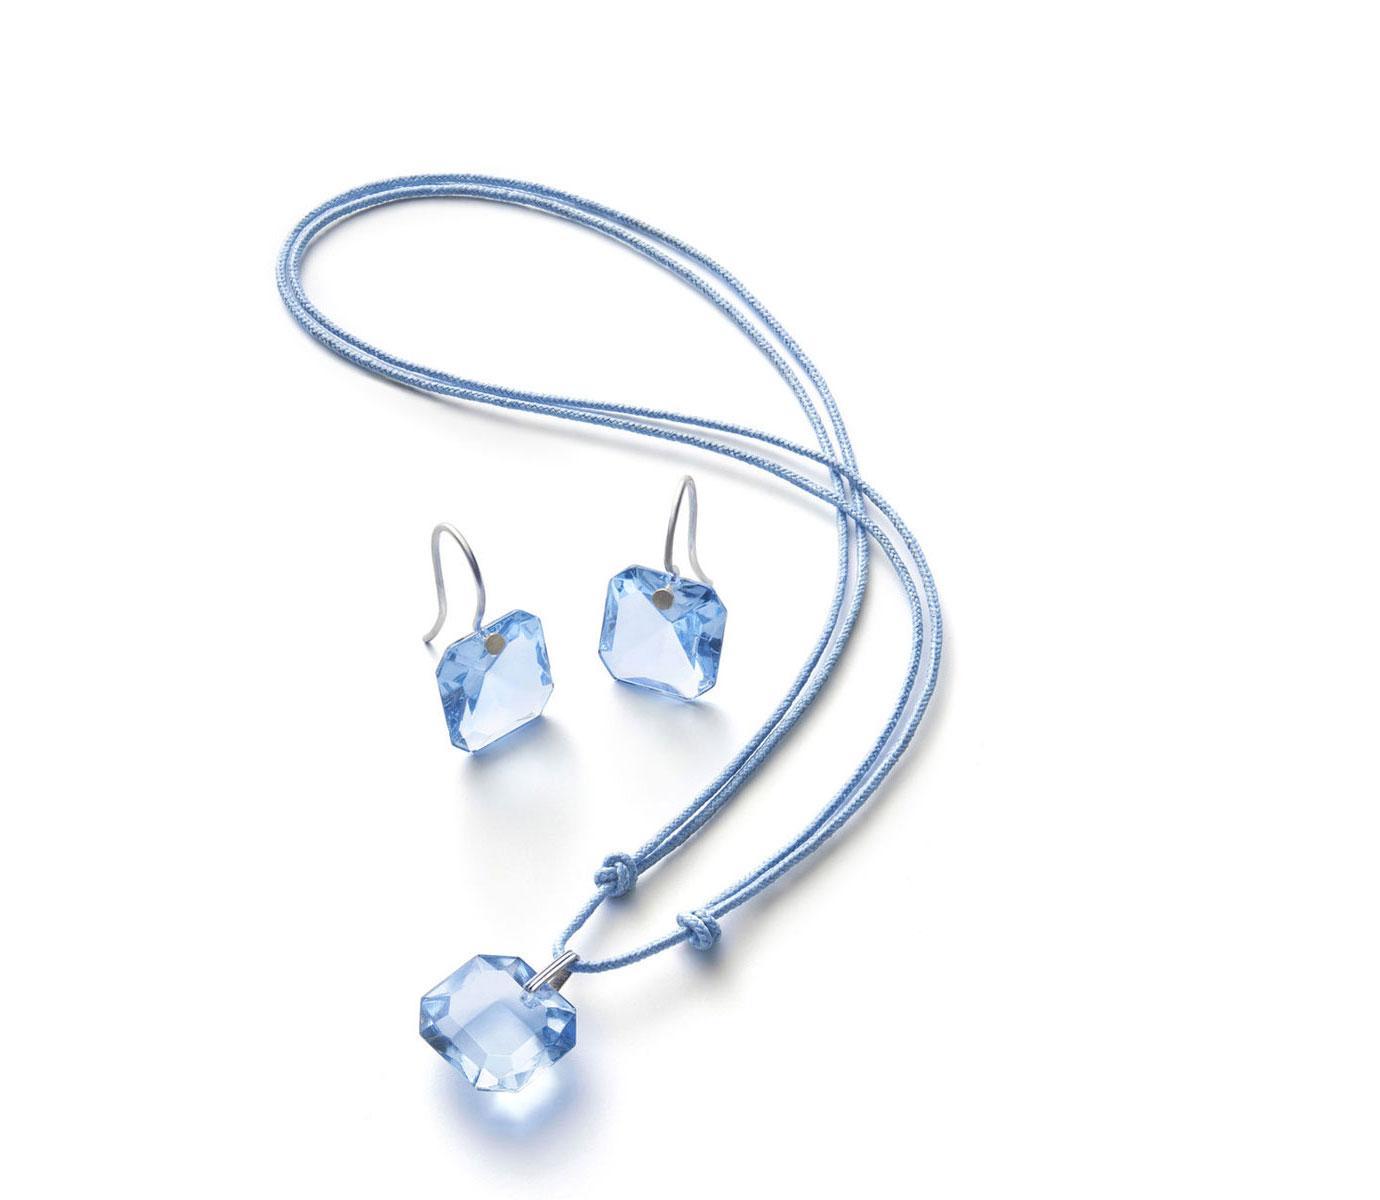 Baccarat Crystal Marie-Helene De Taillac Earrings Small Wire Sterling Silver Light Blue